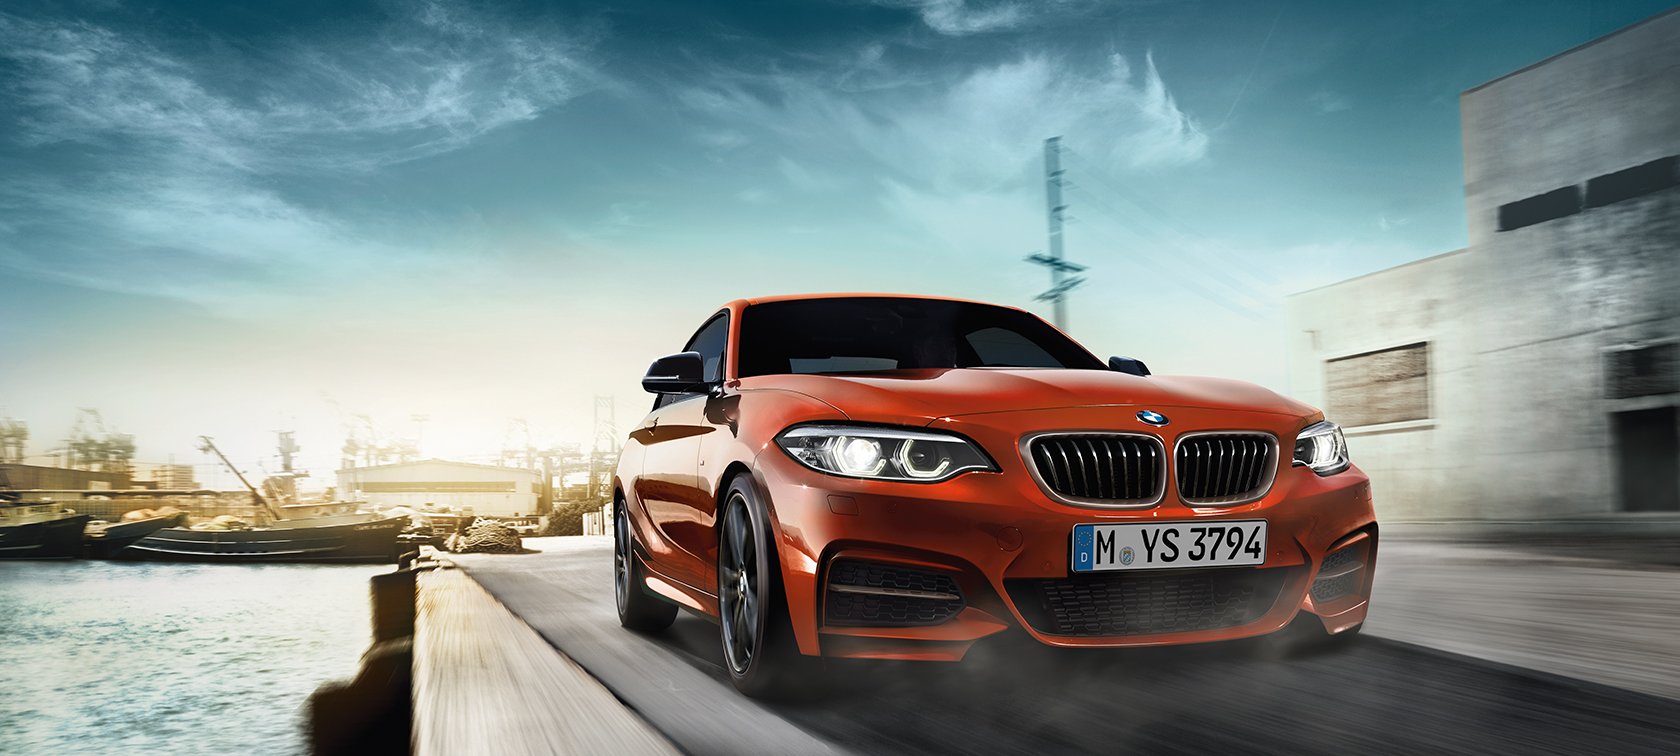 BMW 2-serie Coupé, set forfra let drejet